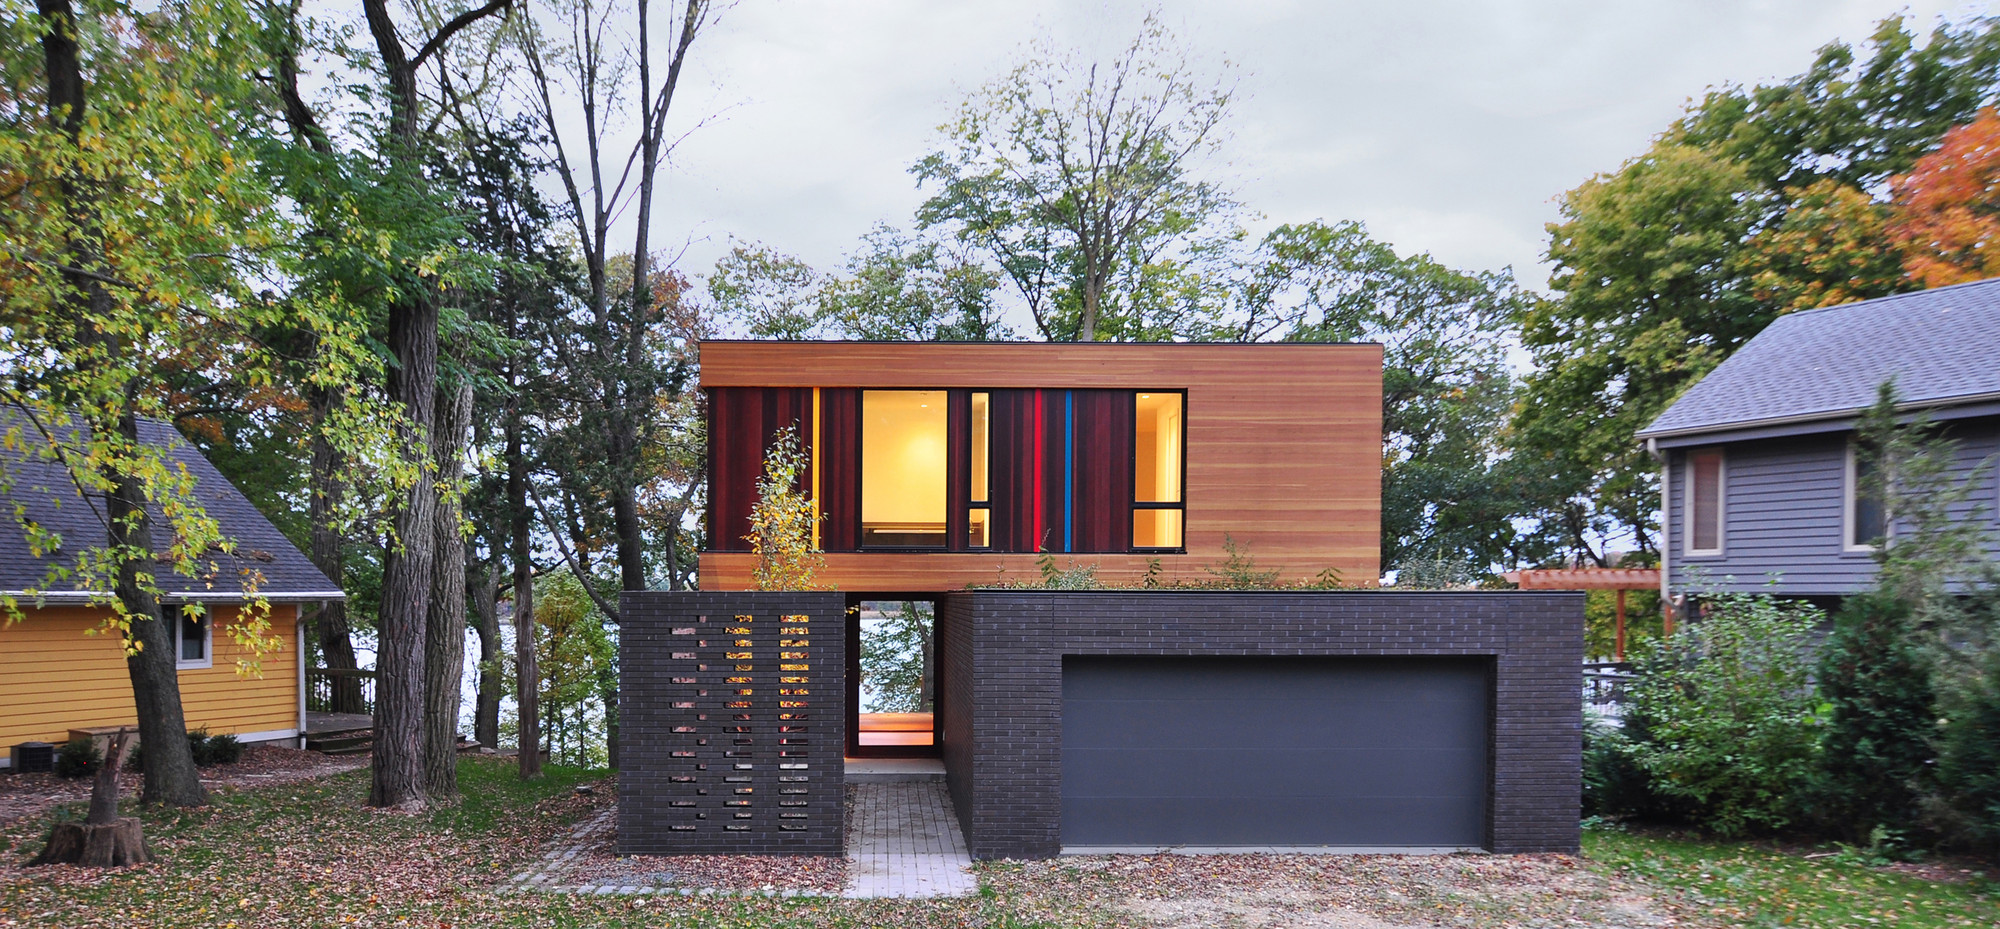 Redaction House / Johnsen Schmaling Architects, © John J. Macaulay